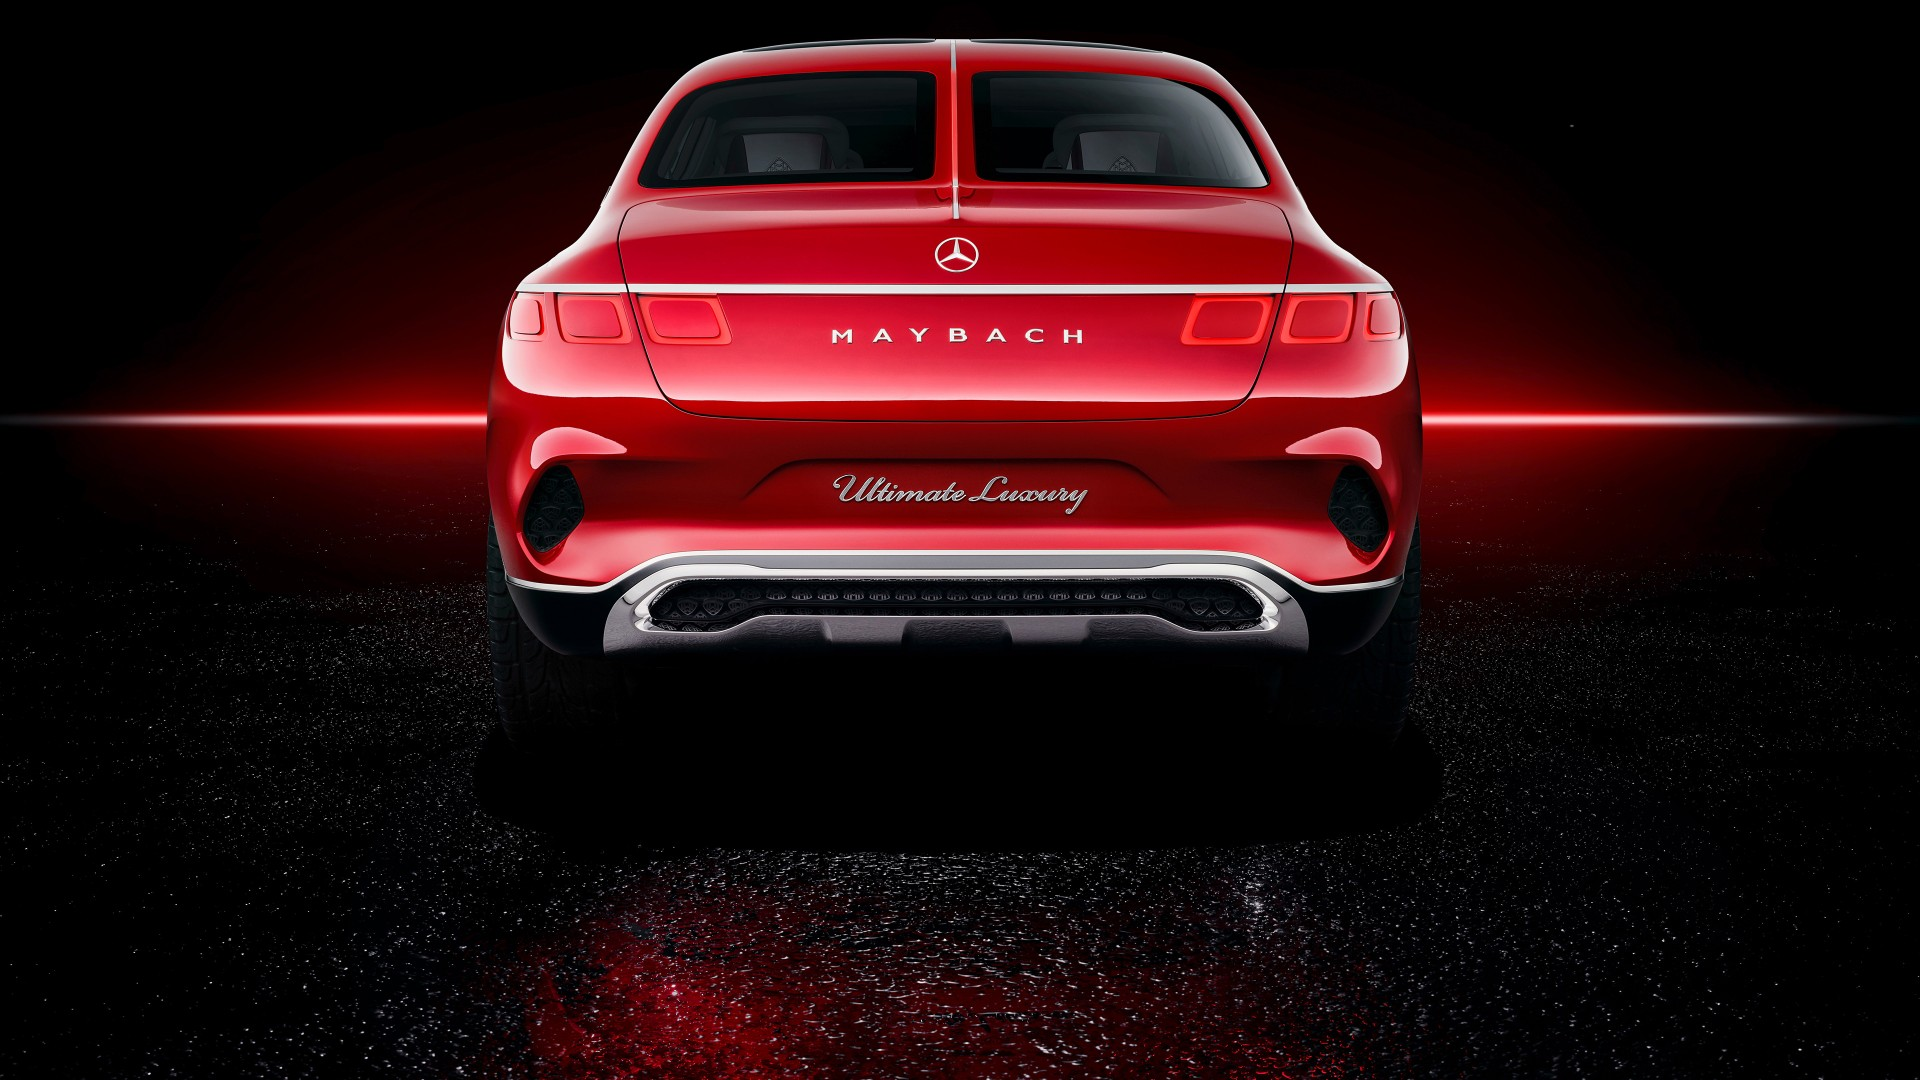 Mercedes Benz Amg Gt >> 2018 Vision Mercedes Maybach Ultimate Luxury 4K 6 Wallpaper | HD Car Wallpapers | ID #10220